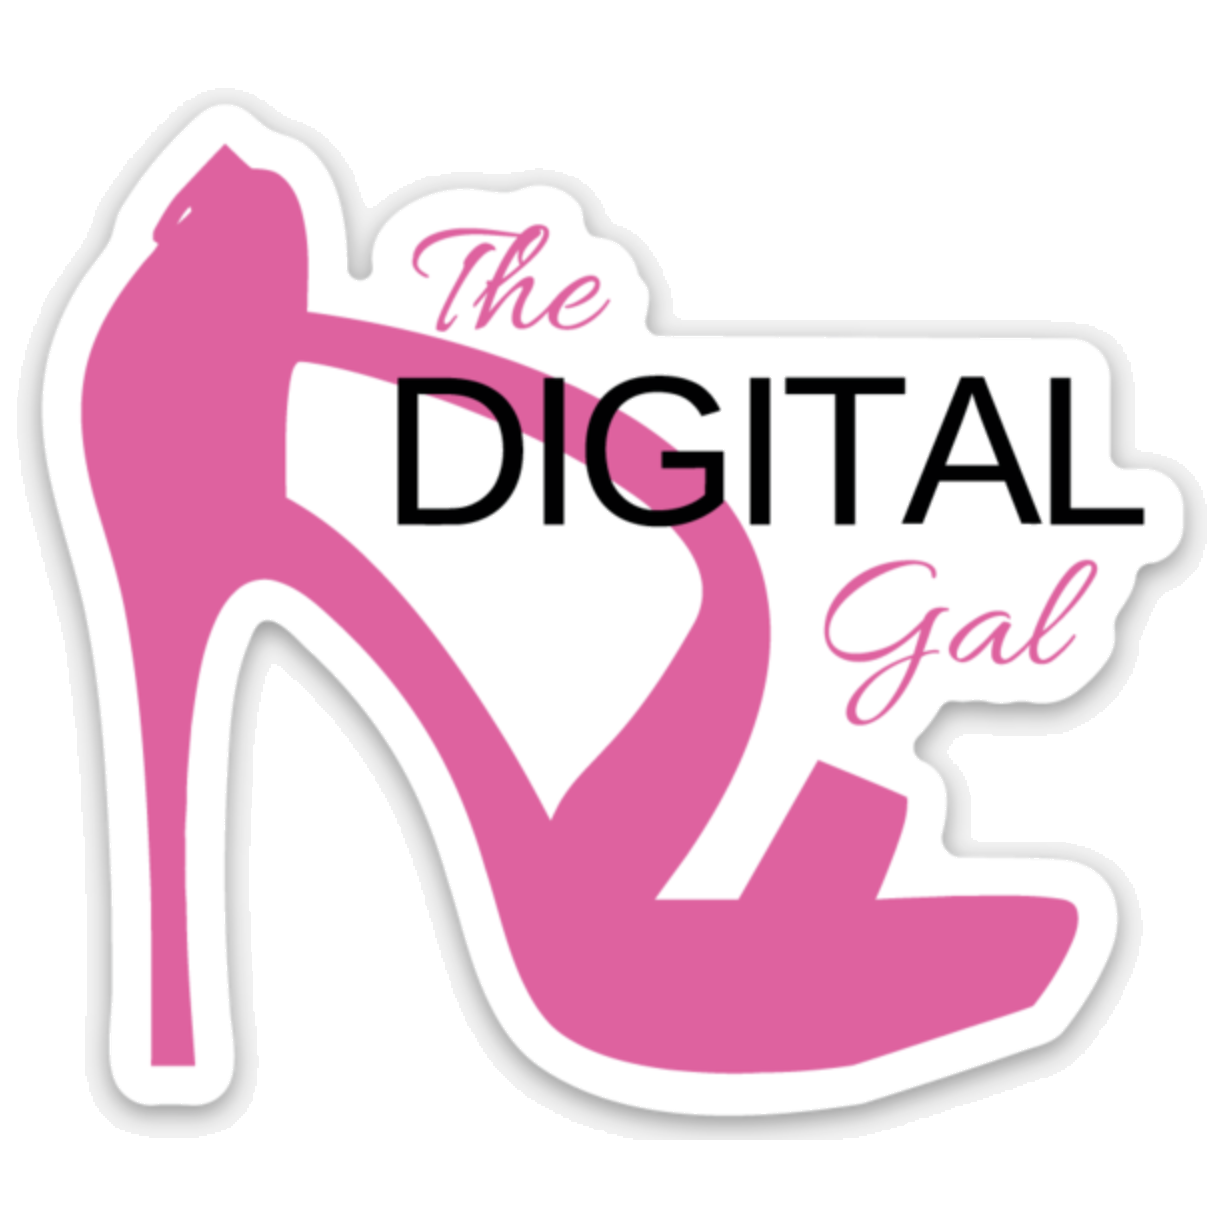 The Digital Gal